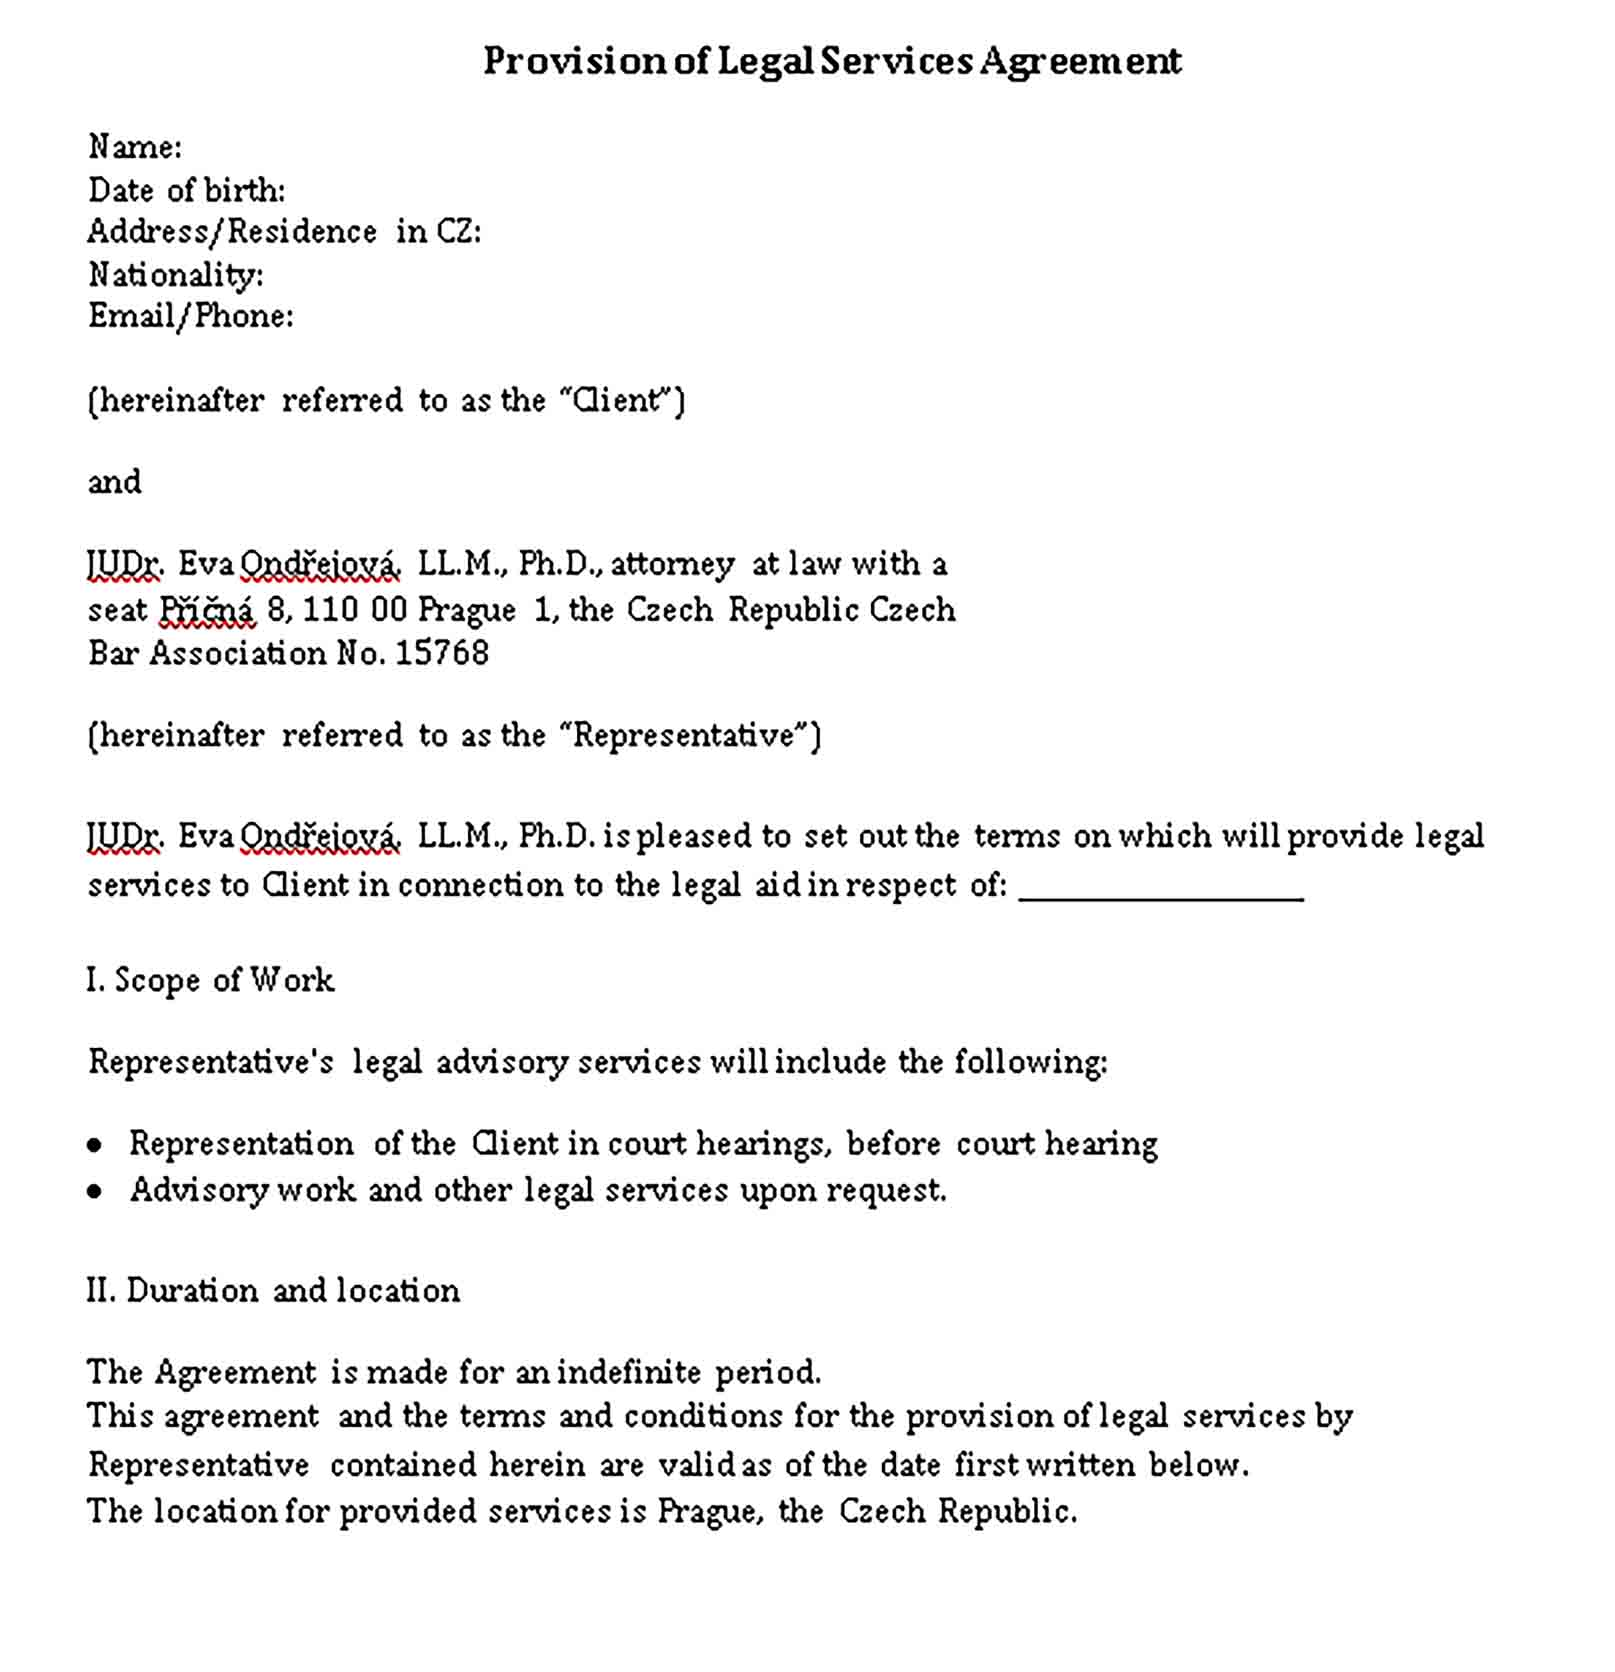 Templates Provision of legal services Agreement Sample